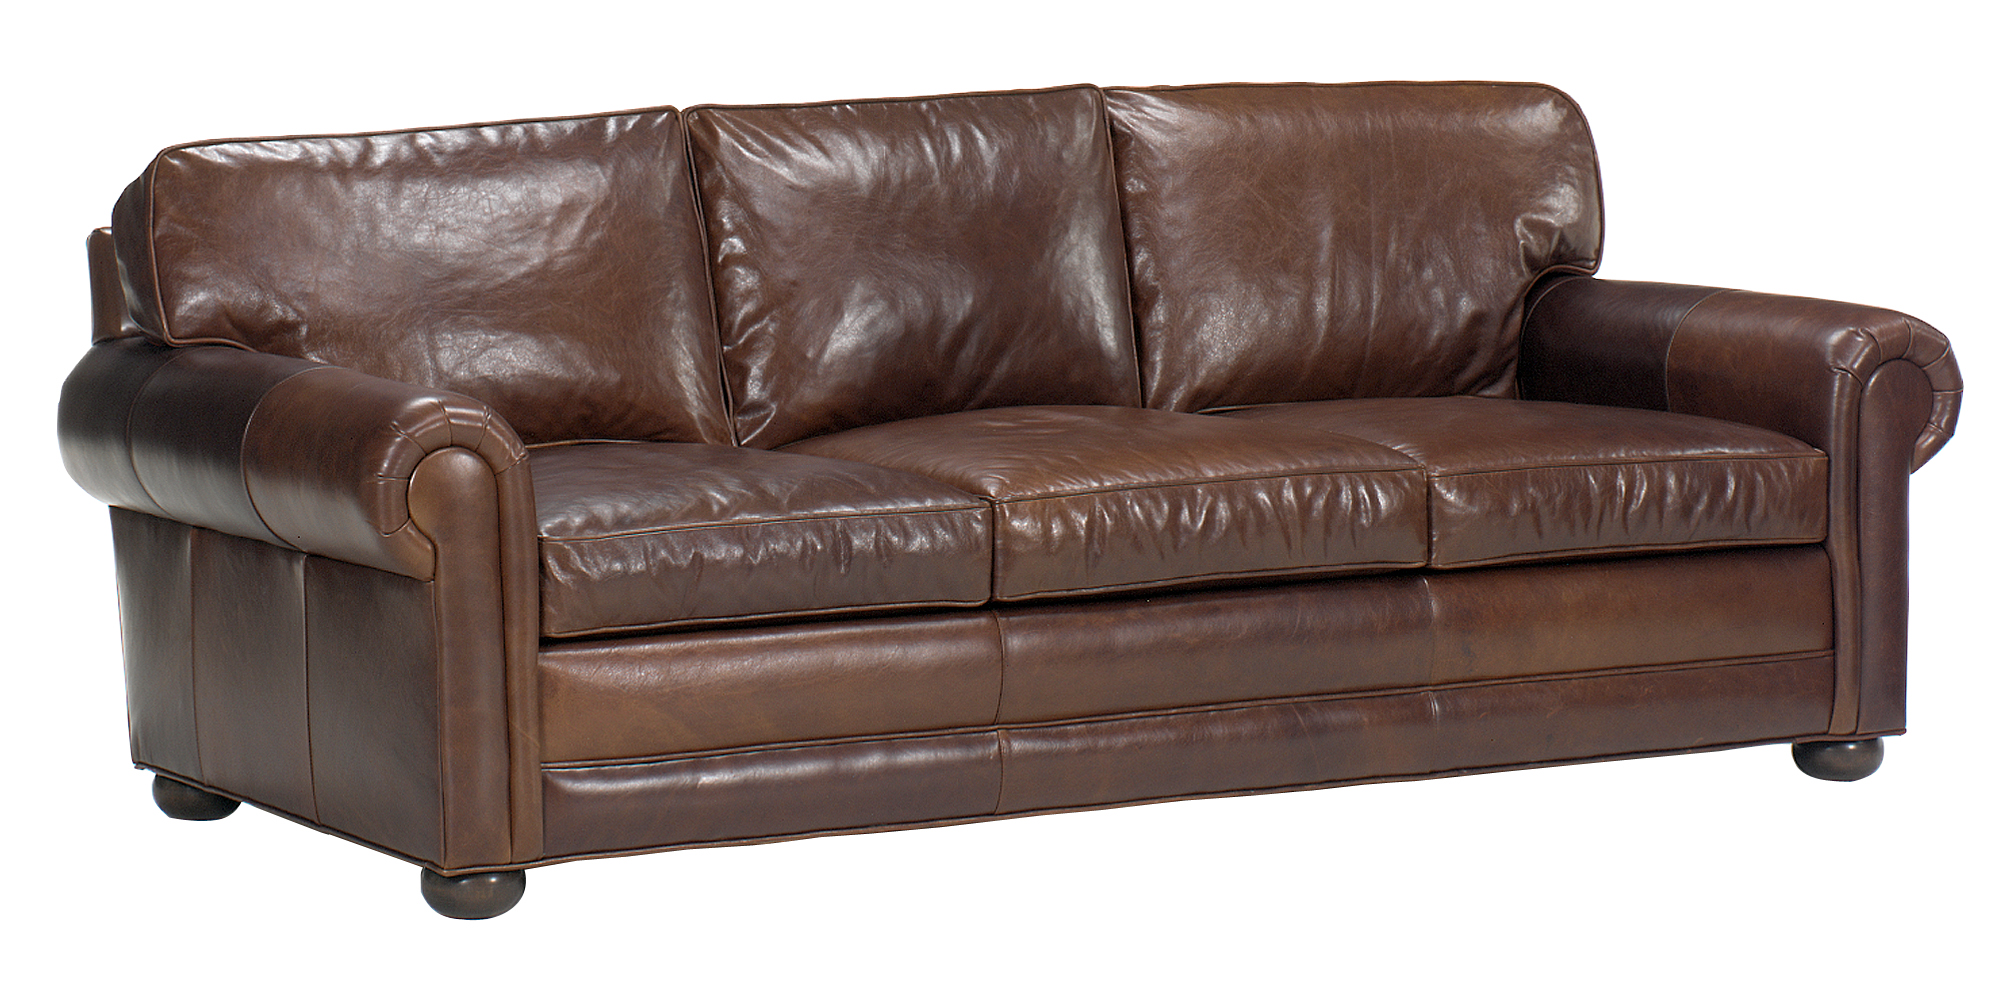 Recliners Sofas On Clearance Sale